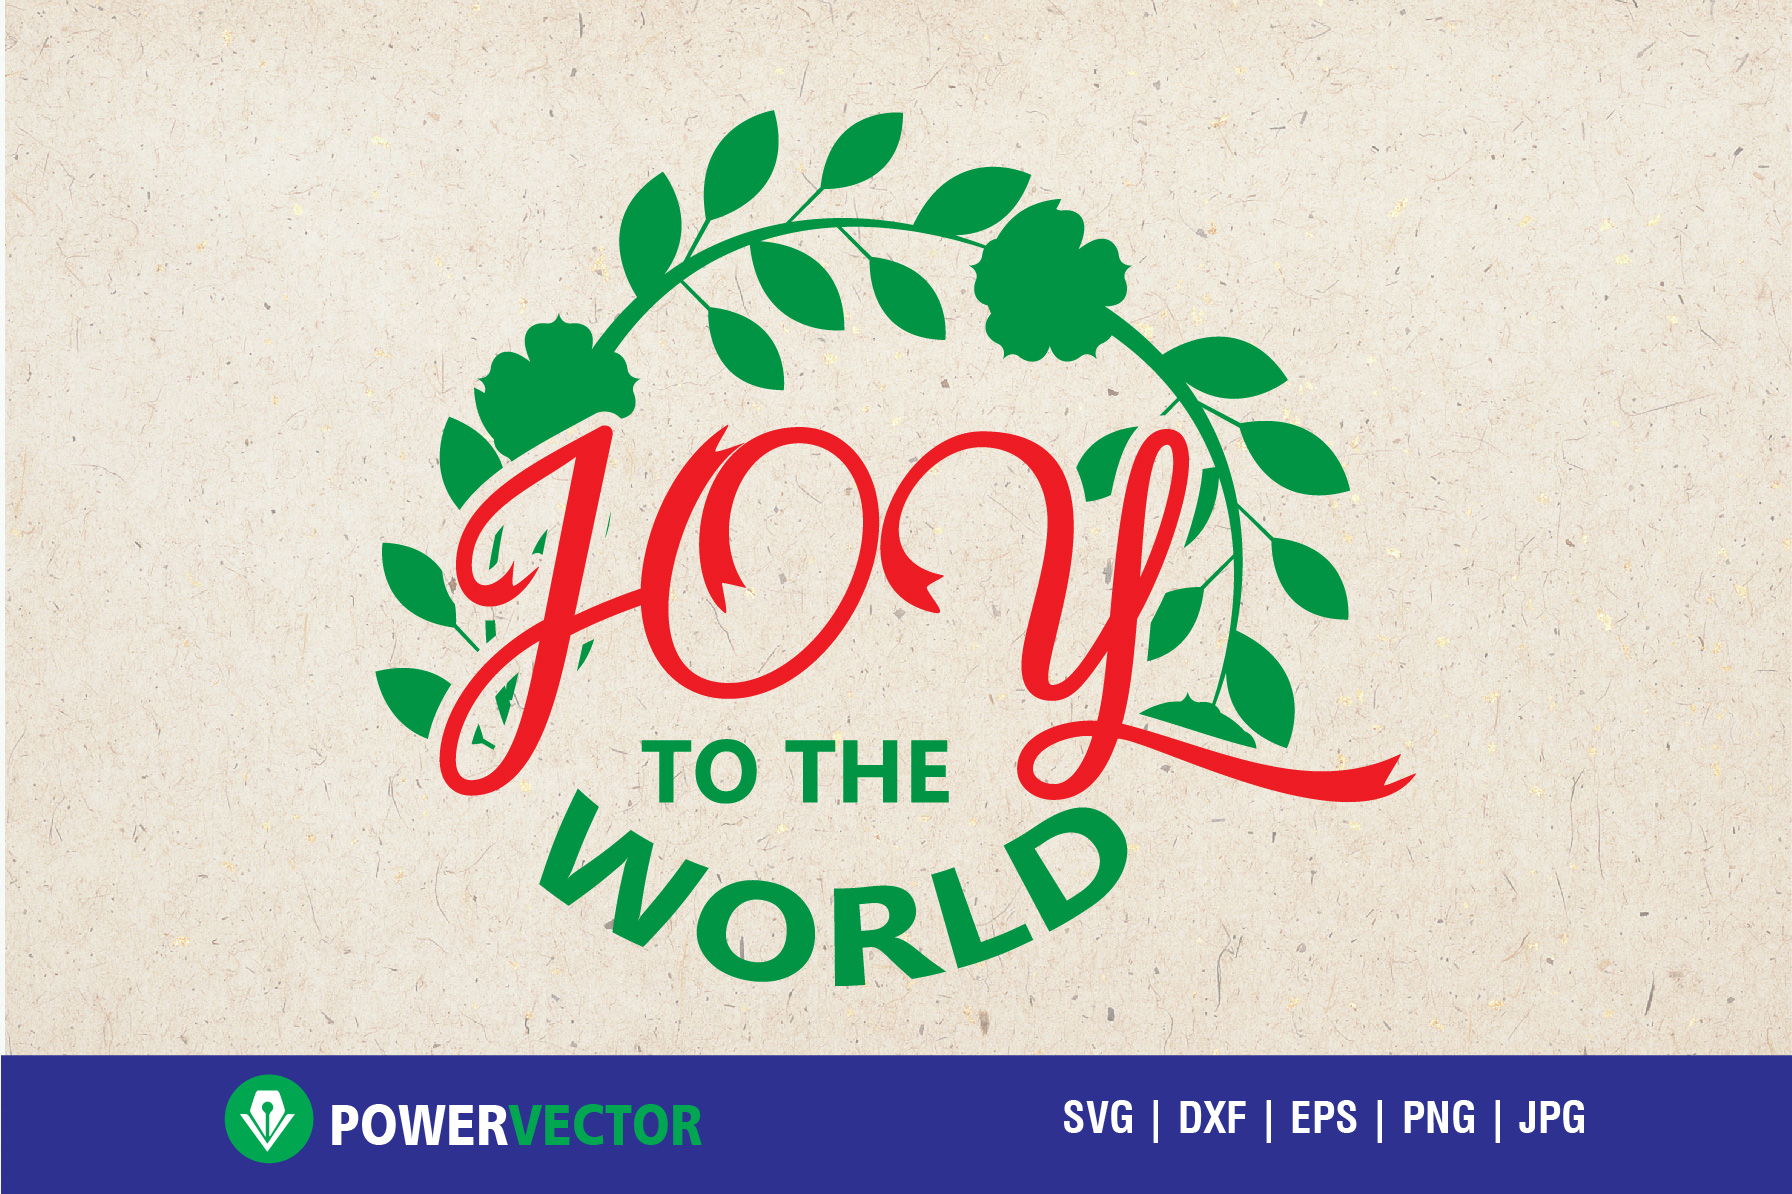 Download Free Joy To The World Svg Cutting File Graphic By Powervector for Cricut Explore, Silhouette and other cutting machines.